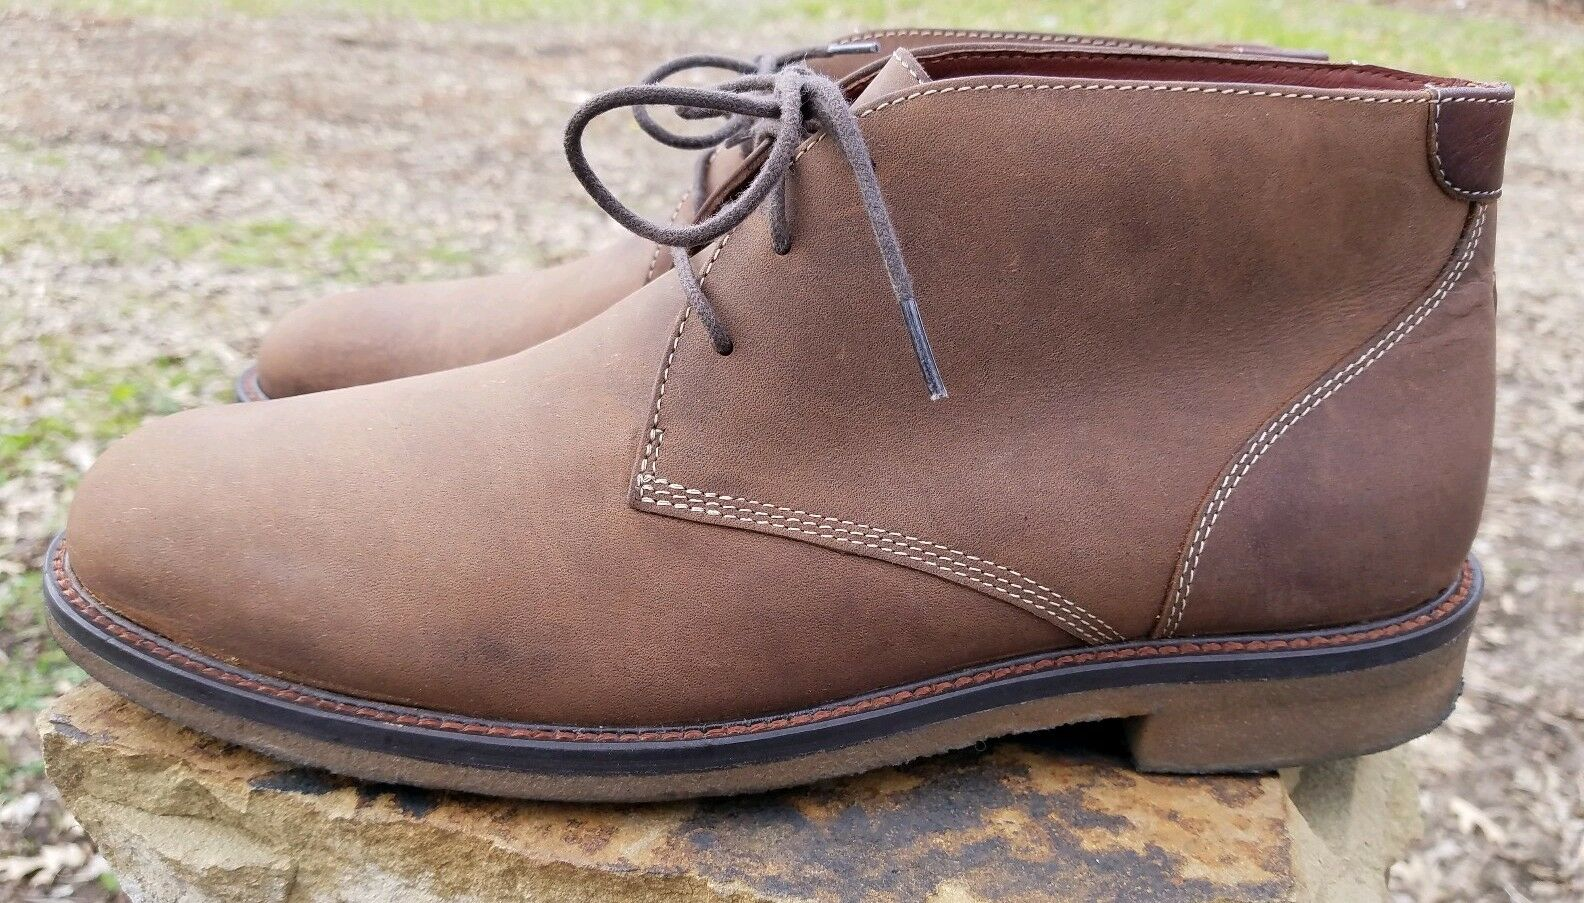 Johnston Murphy 251870 BROWN Men's shoes Size 9.5 M Leather Boots